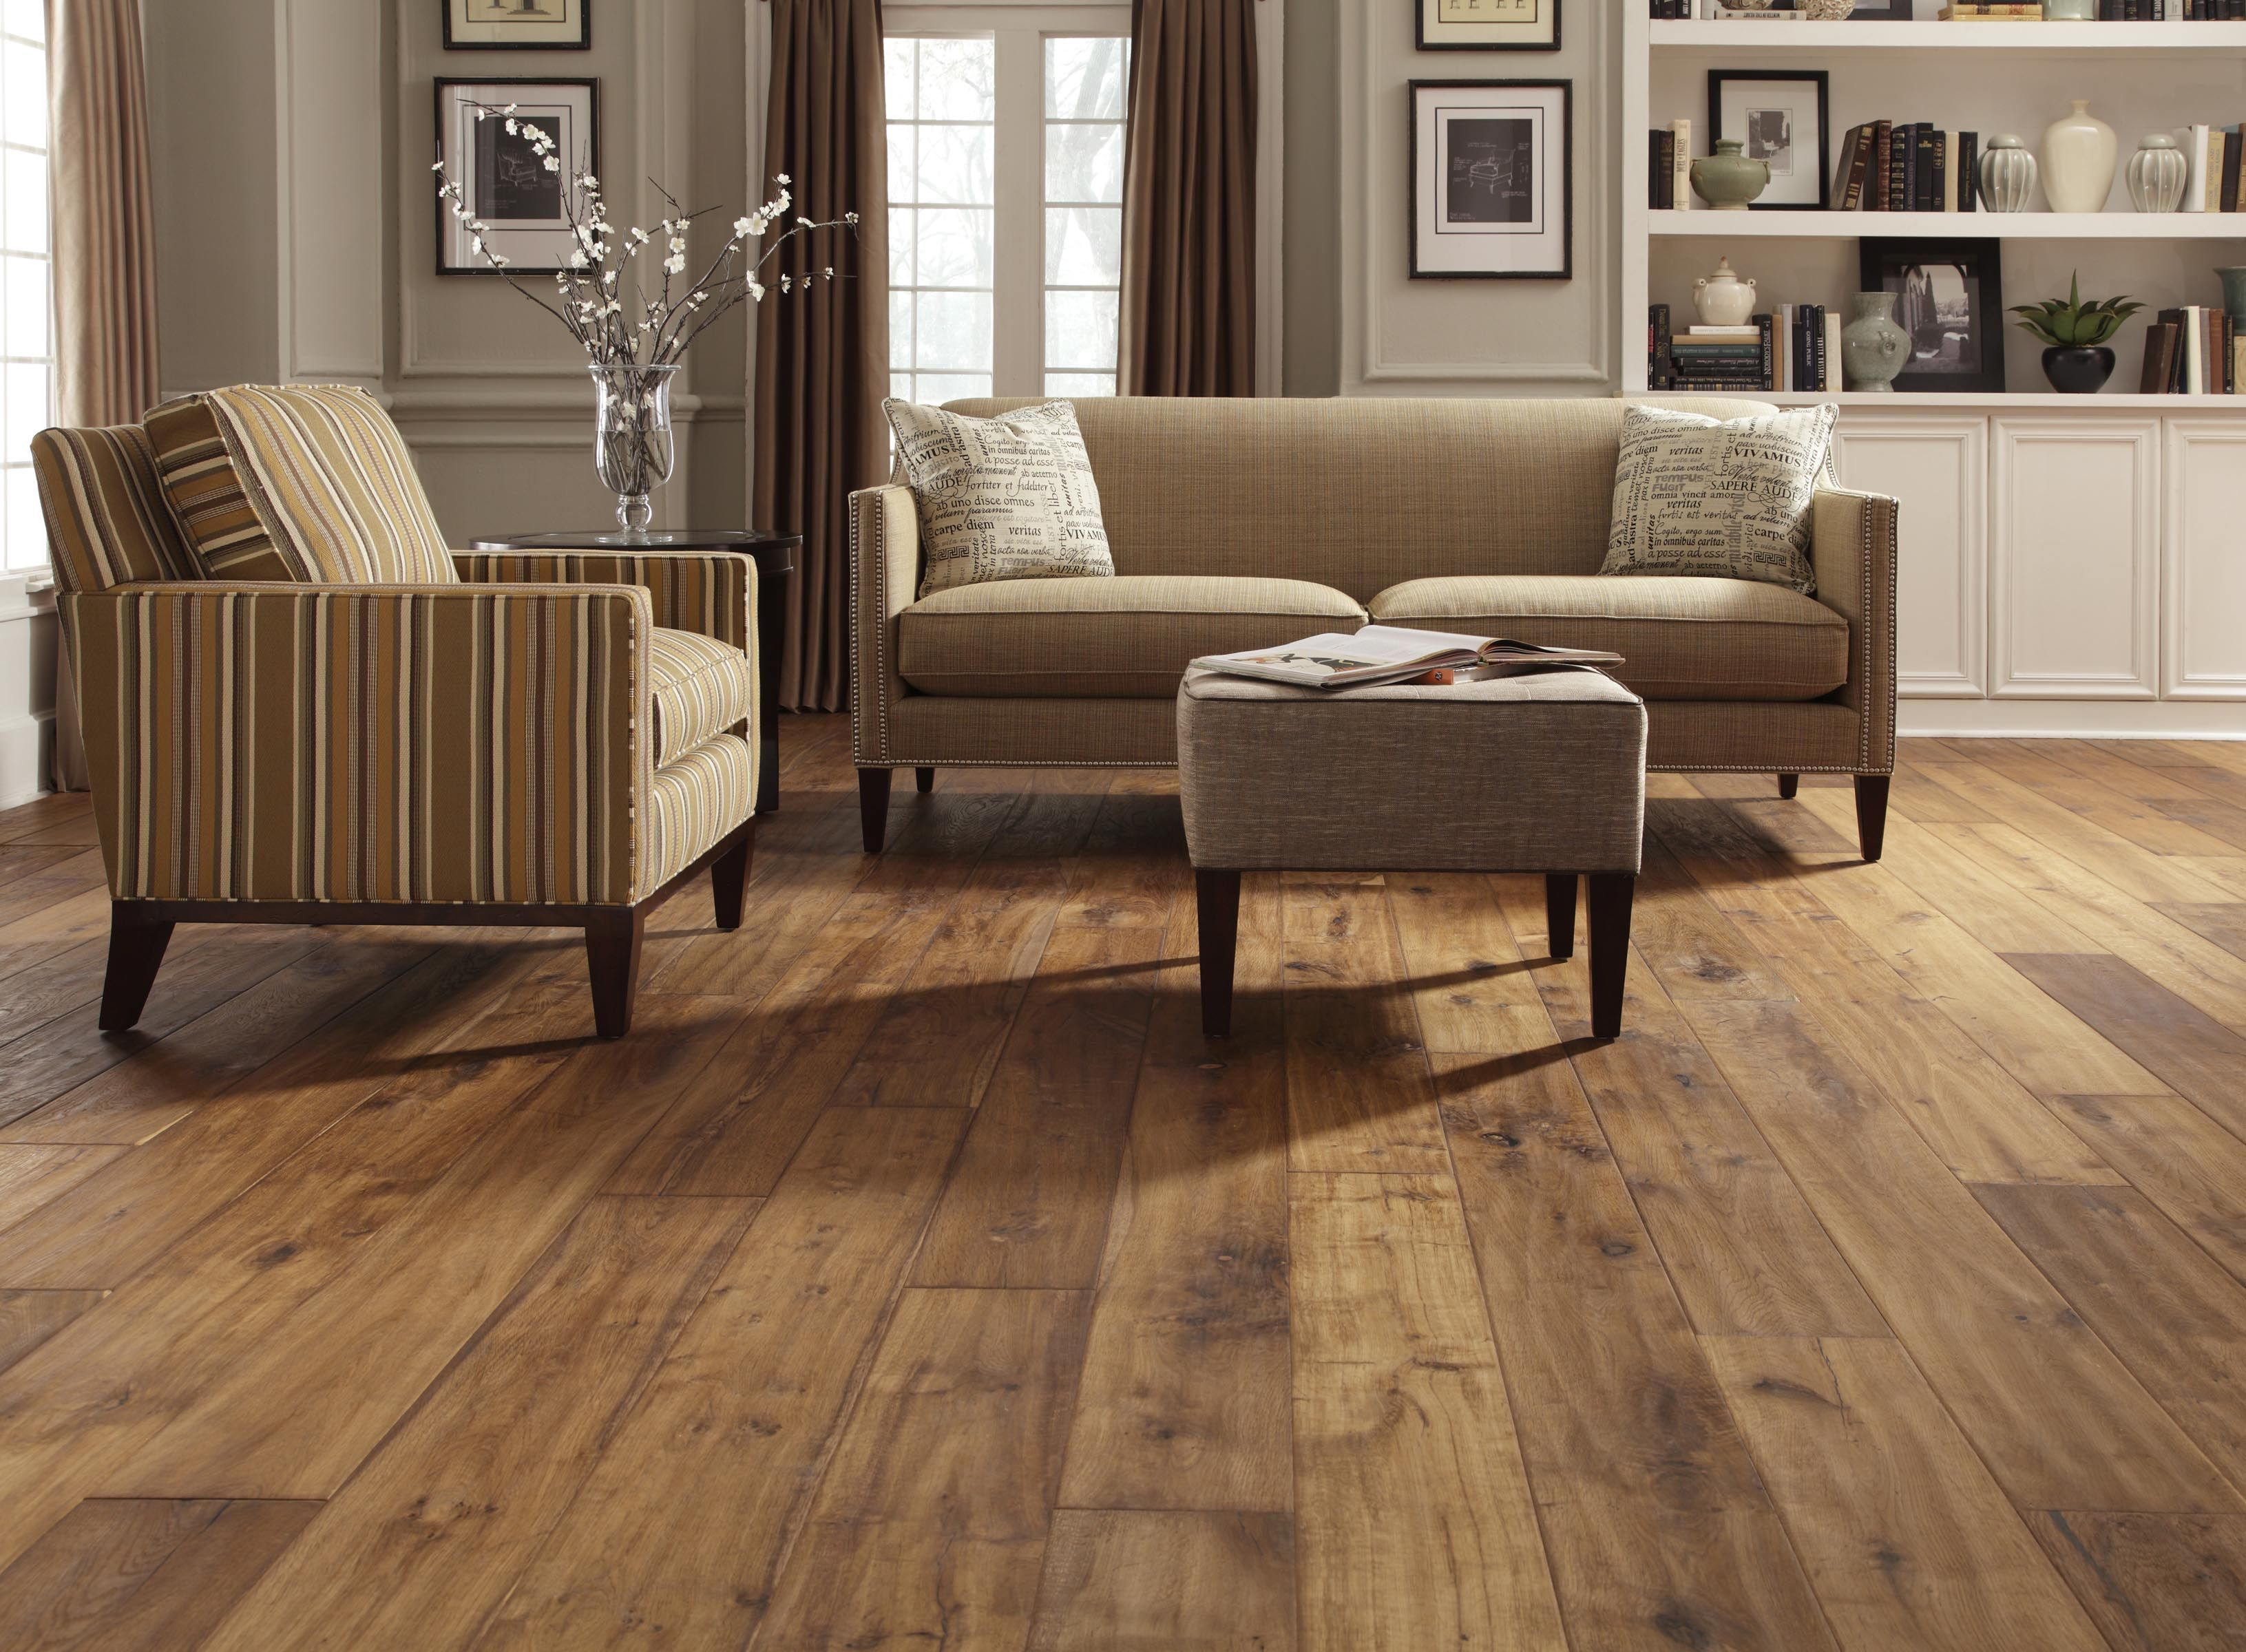 Wood tiles and laminateoh my on Pinterest